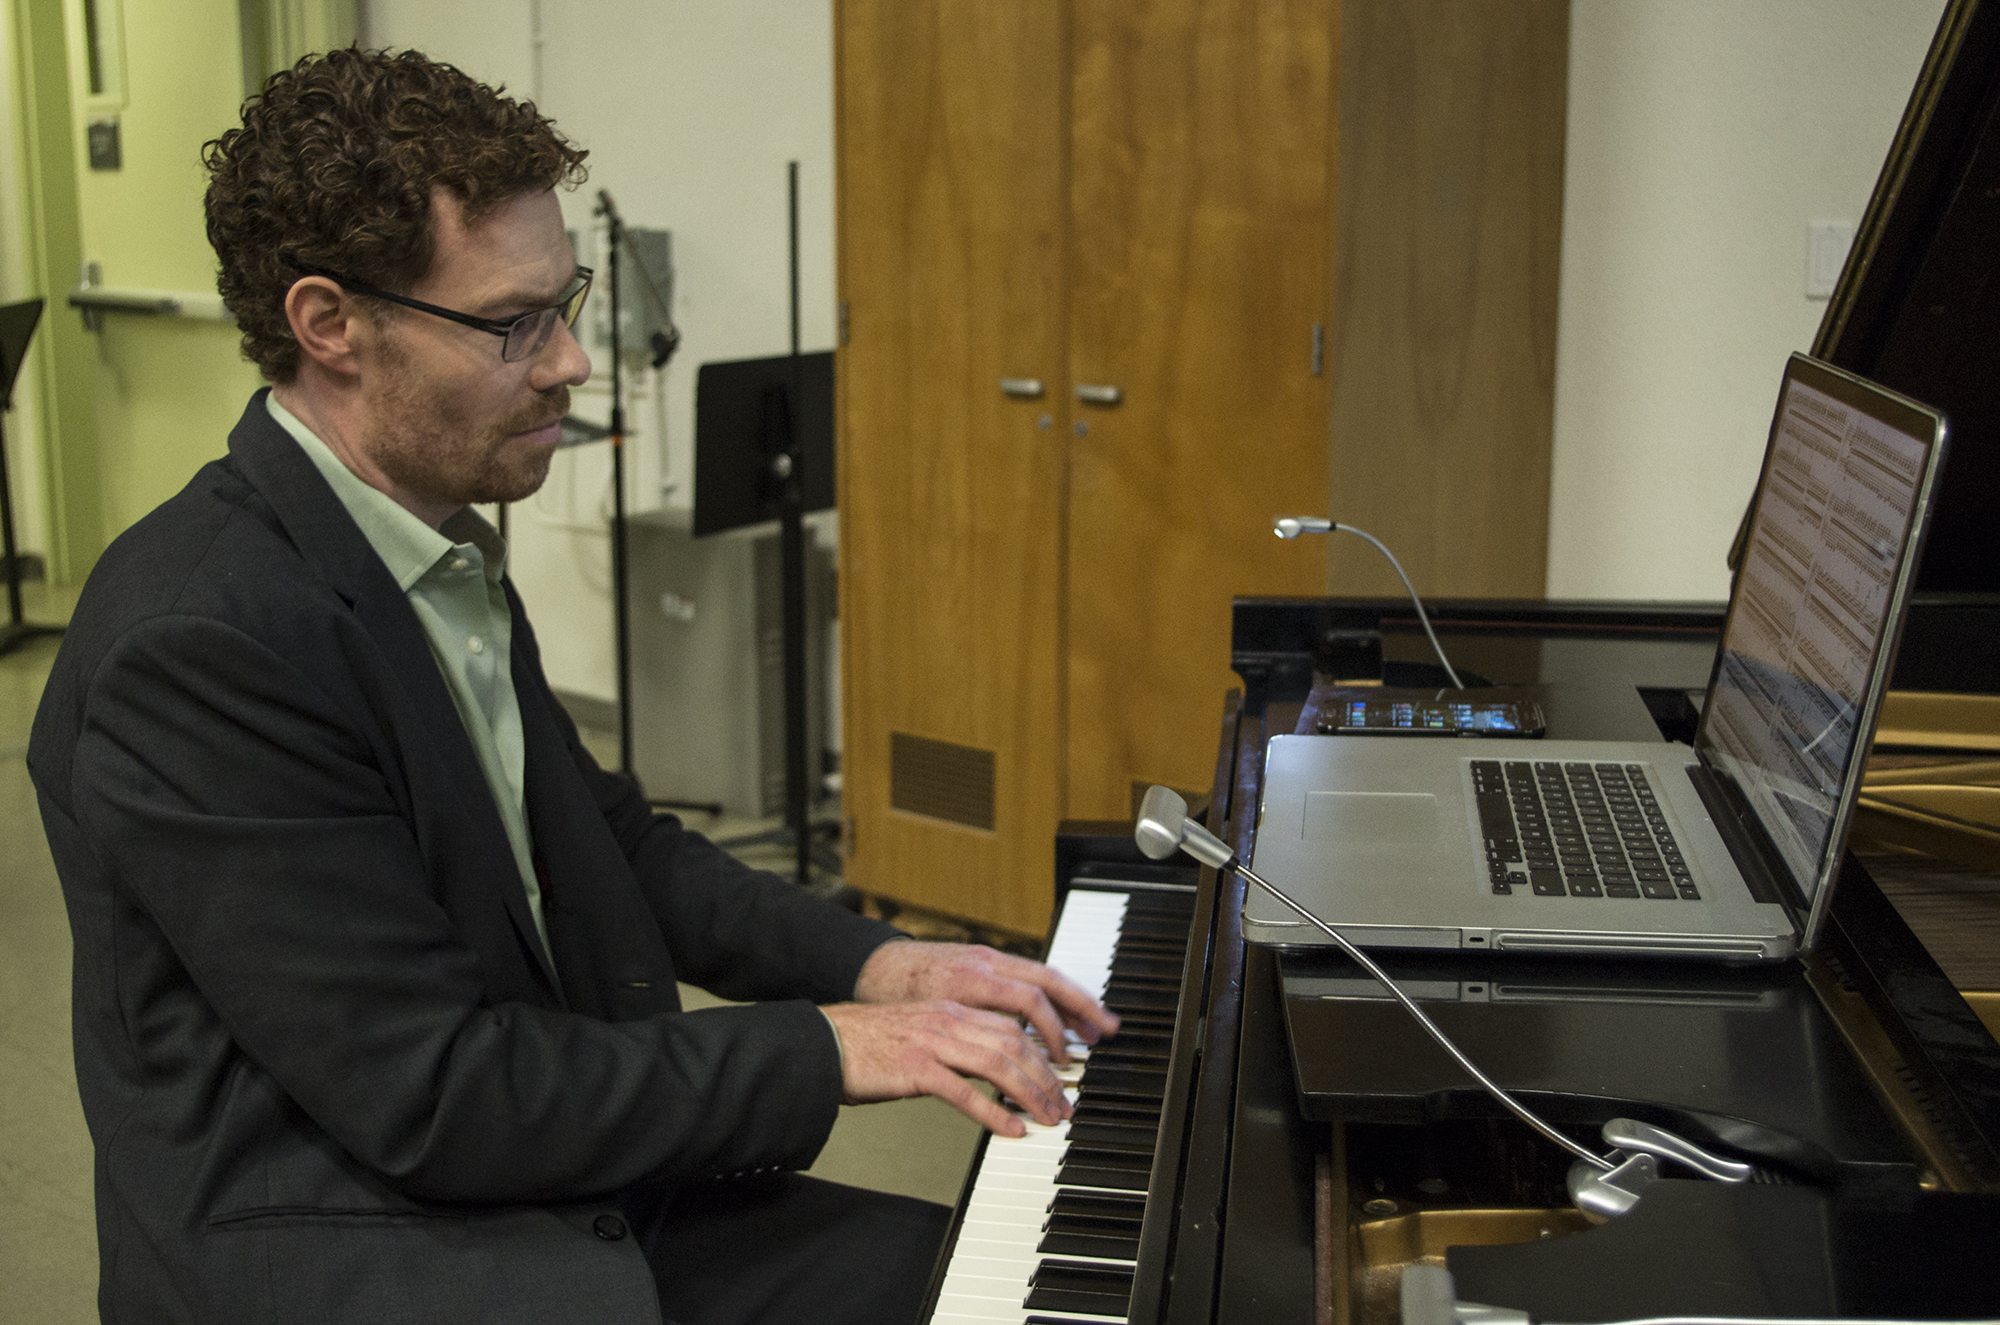 Students listen to pianist's trance music at weekly concert